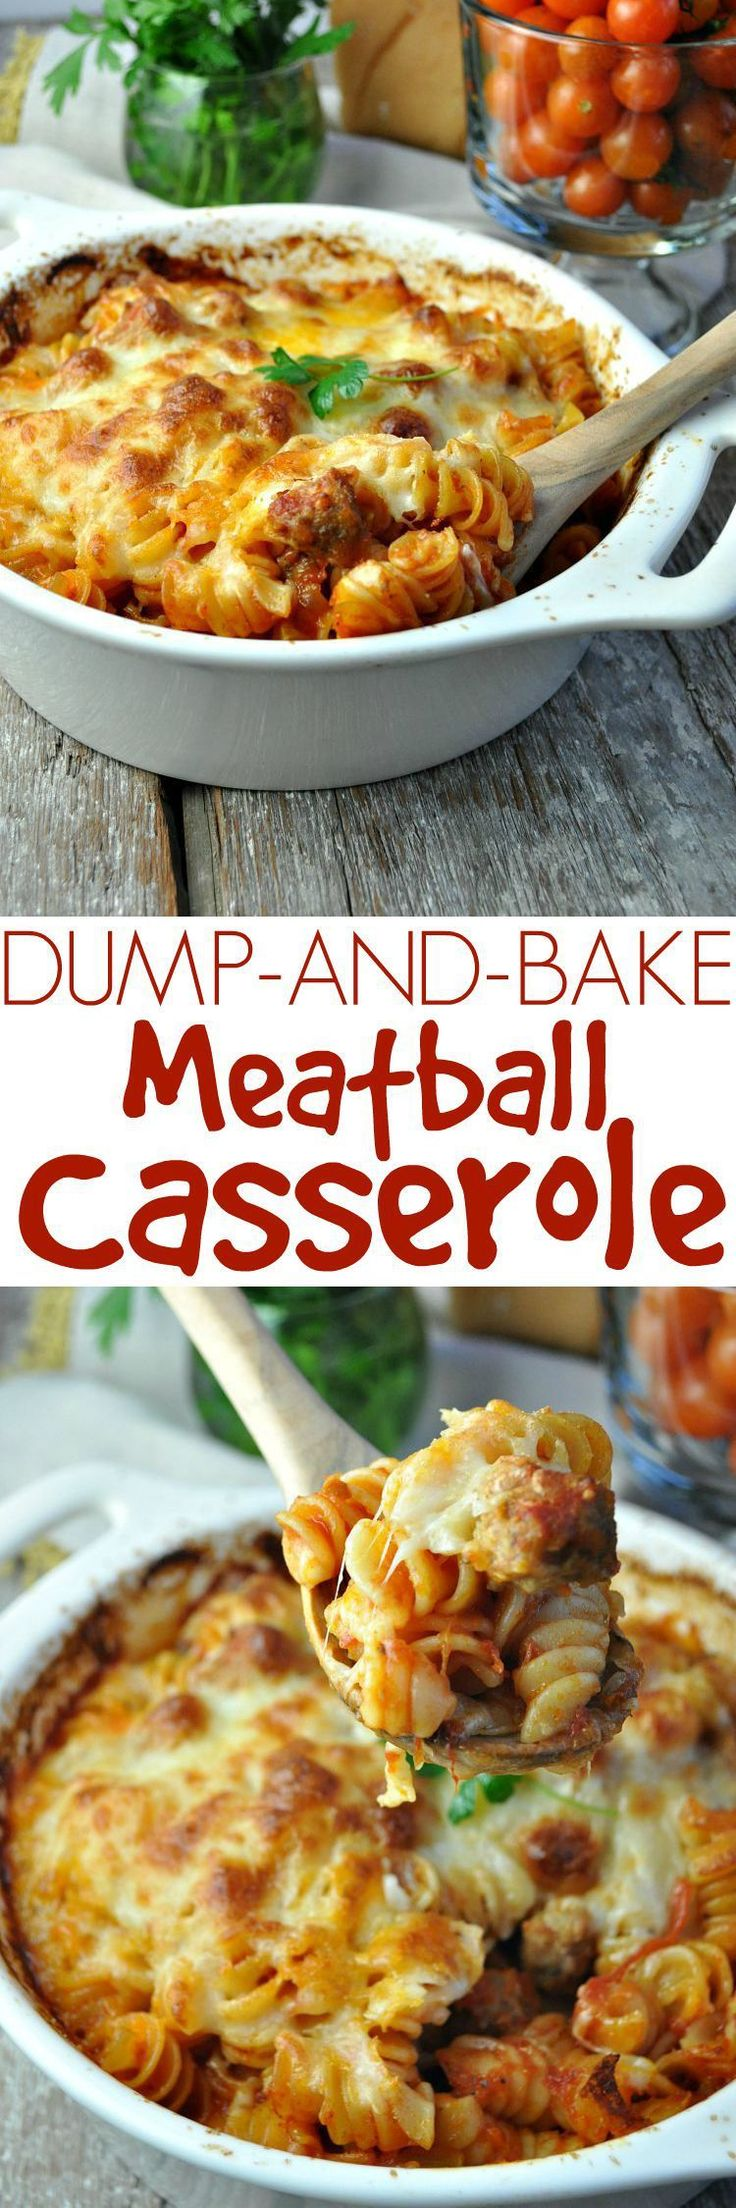 You don't even have to boil the pasta with this easy Dump-and-Bake Meatball Casserole!  Be sure to use a 9 by 13 pan and cover tightly #pastafoodrecipes